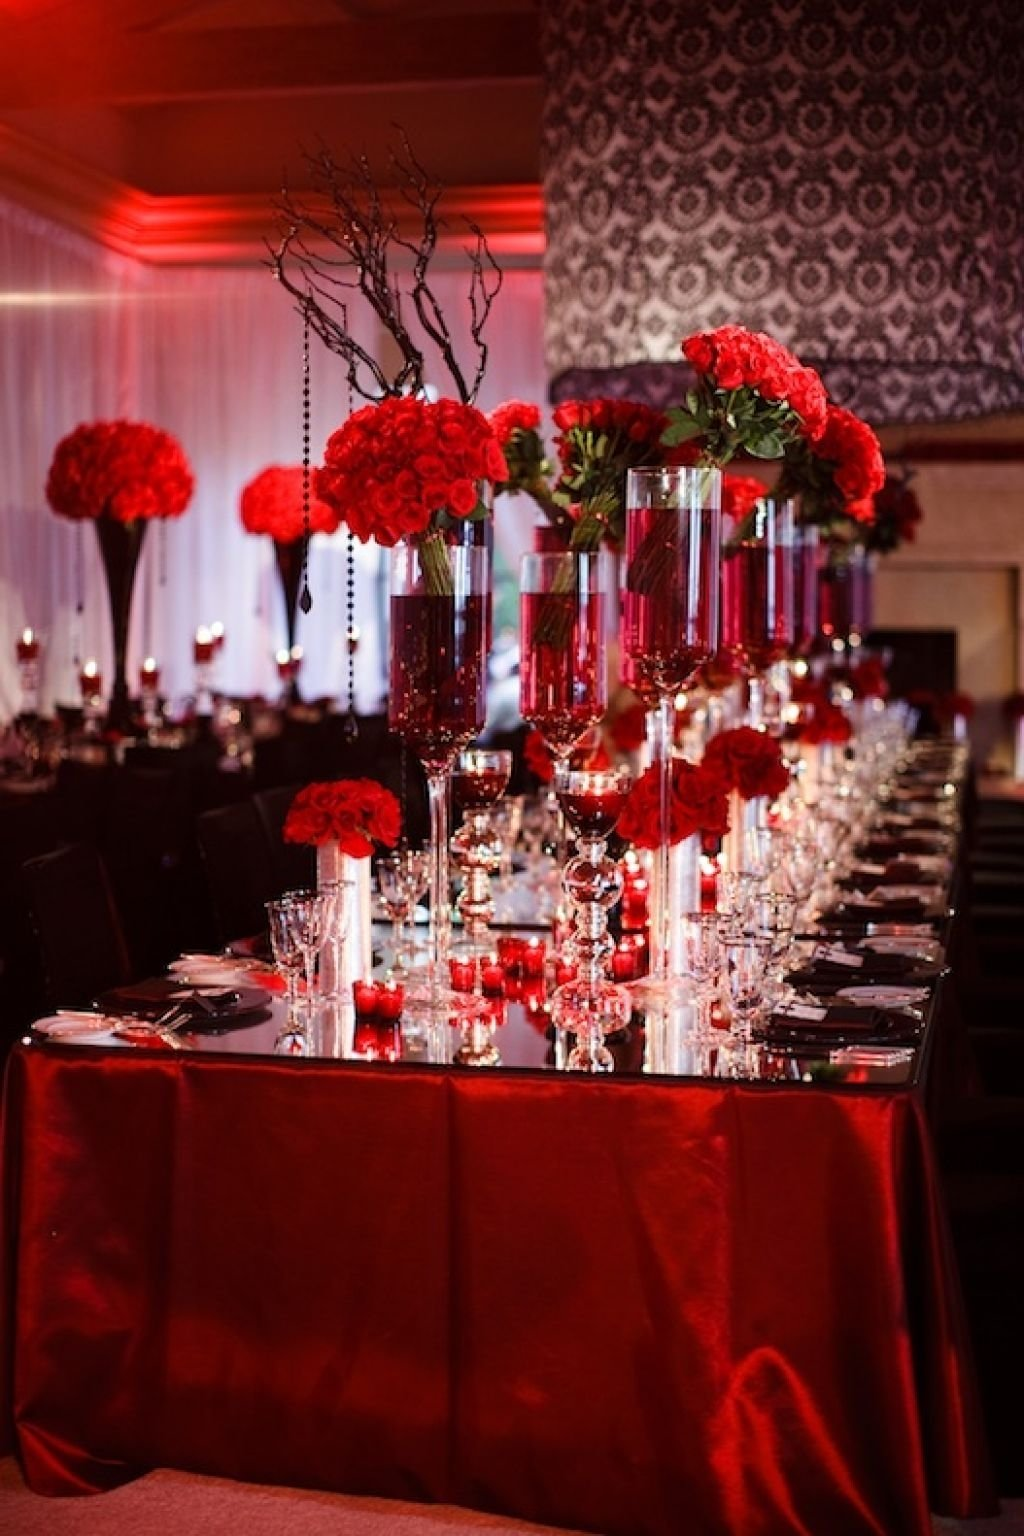 10 Elegant Red Black And White Wedding Reception Ideas red white and black wedding table decorating ideas wedding in 1 2020